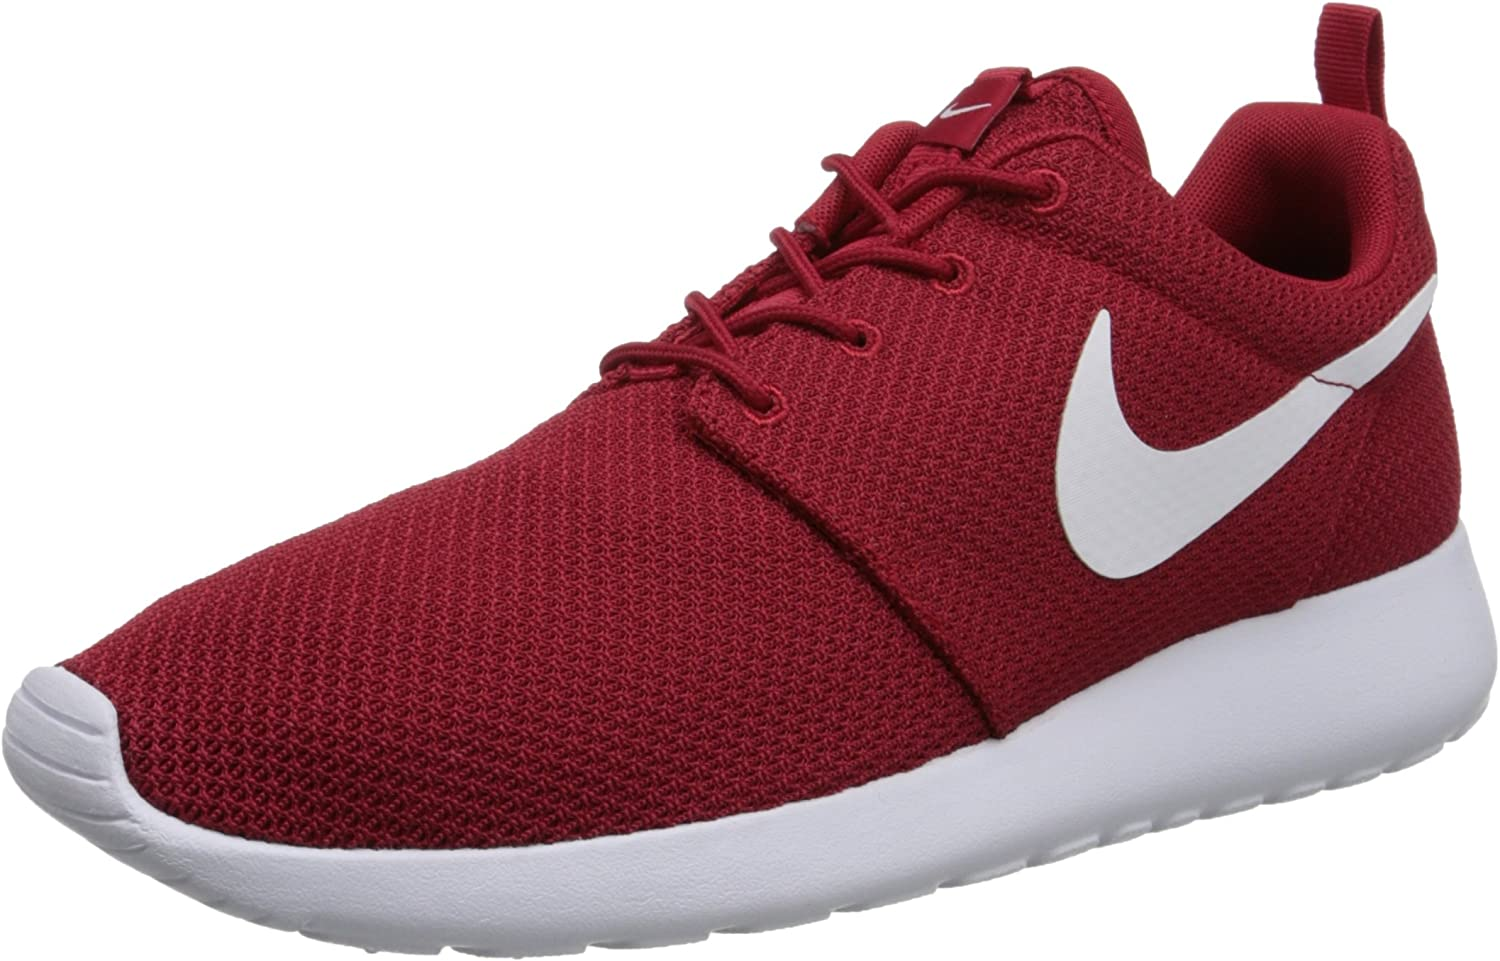 NIKE Roshe One Men's Sneakers Running Shoes 511881-612 US 8